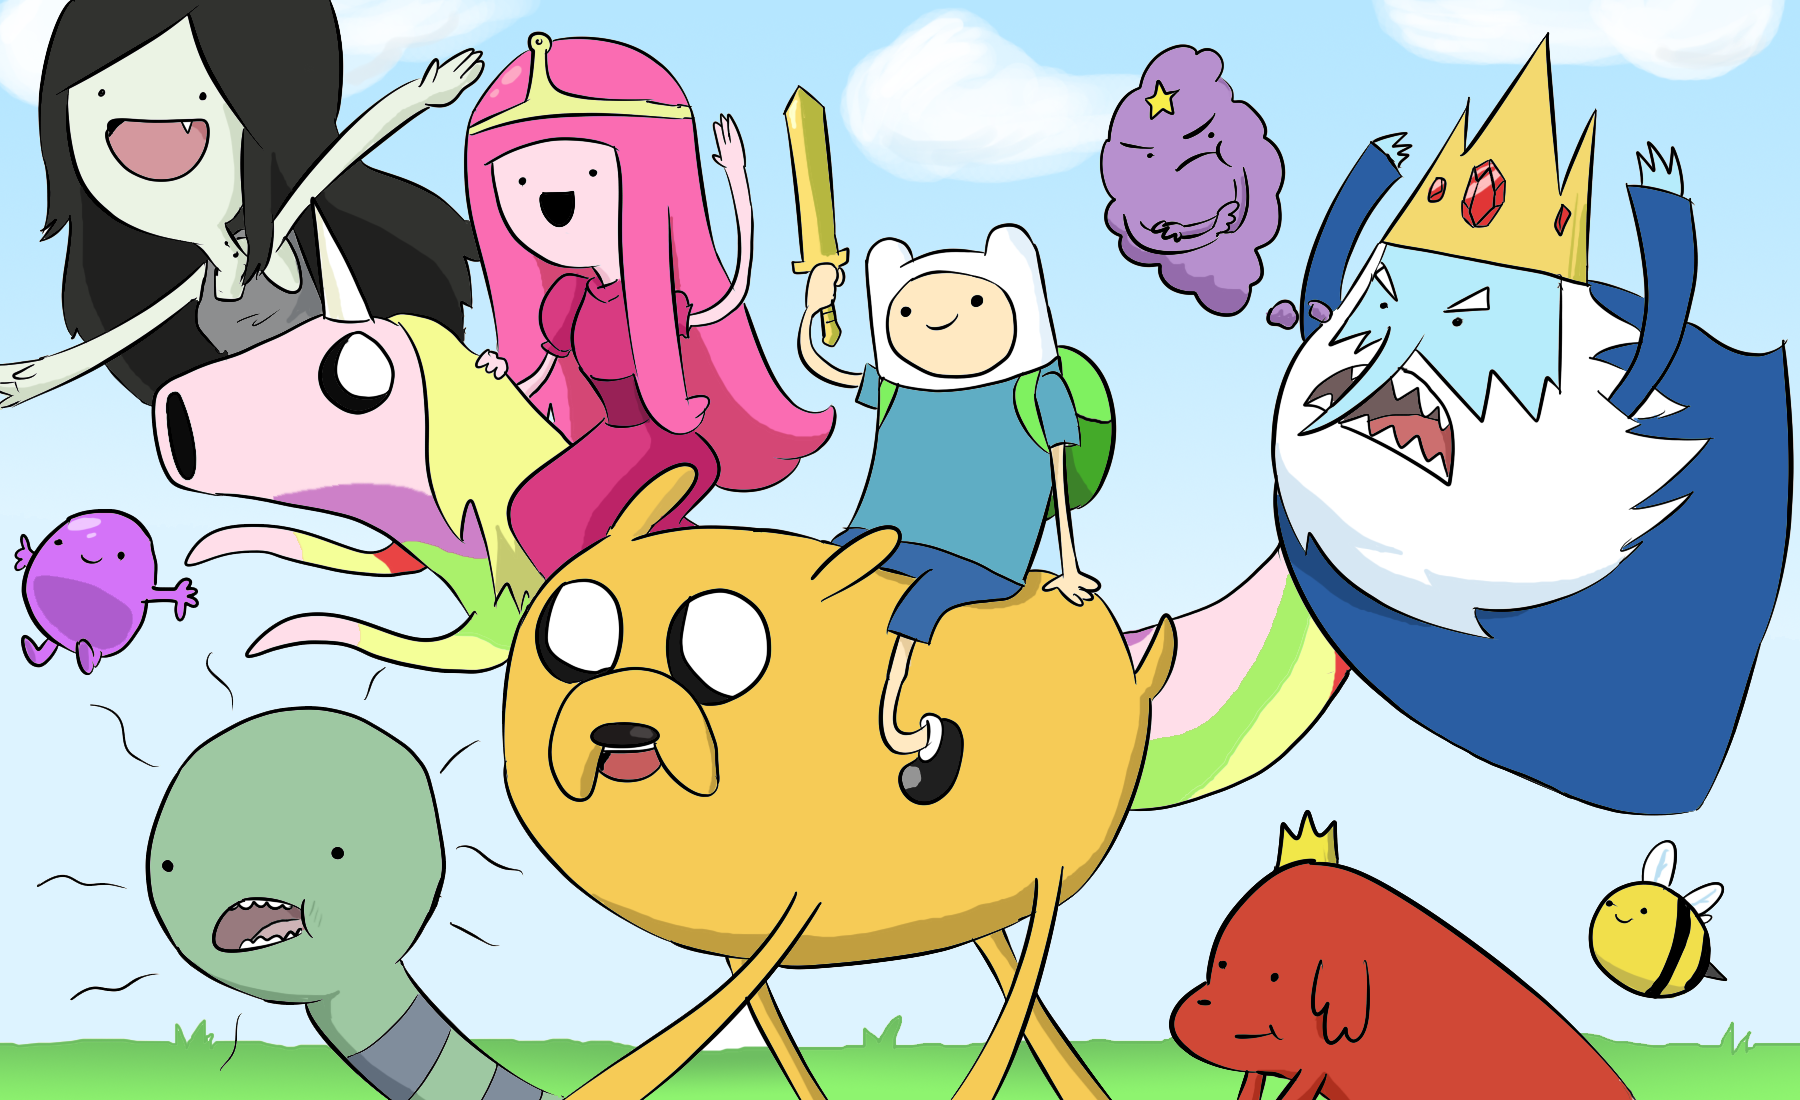 Adventure Time Chibi Png 1800 1100 Cartoons For Learning English Adventure Time Cool Cartoons